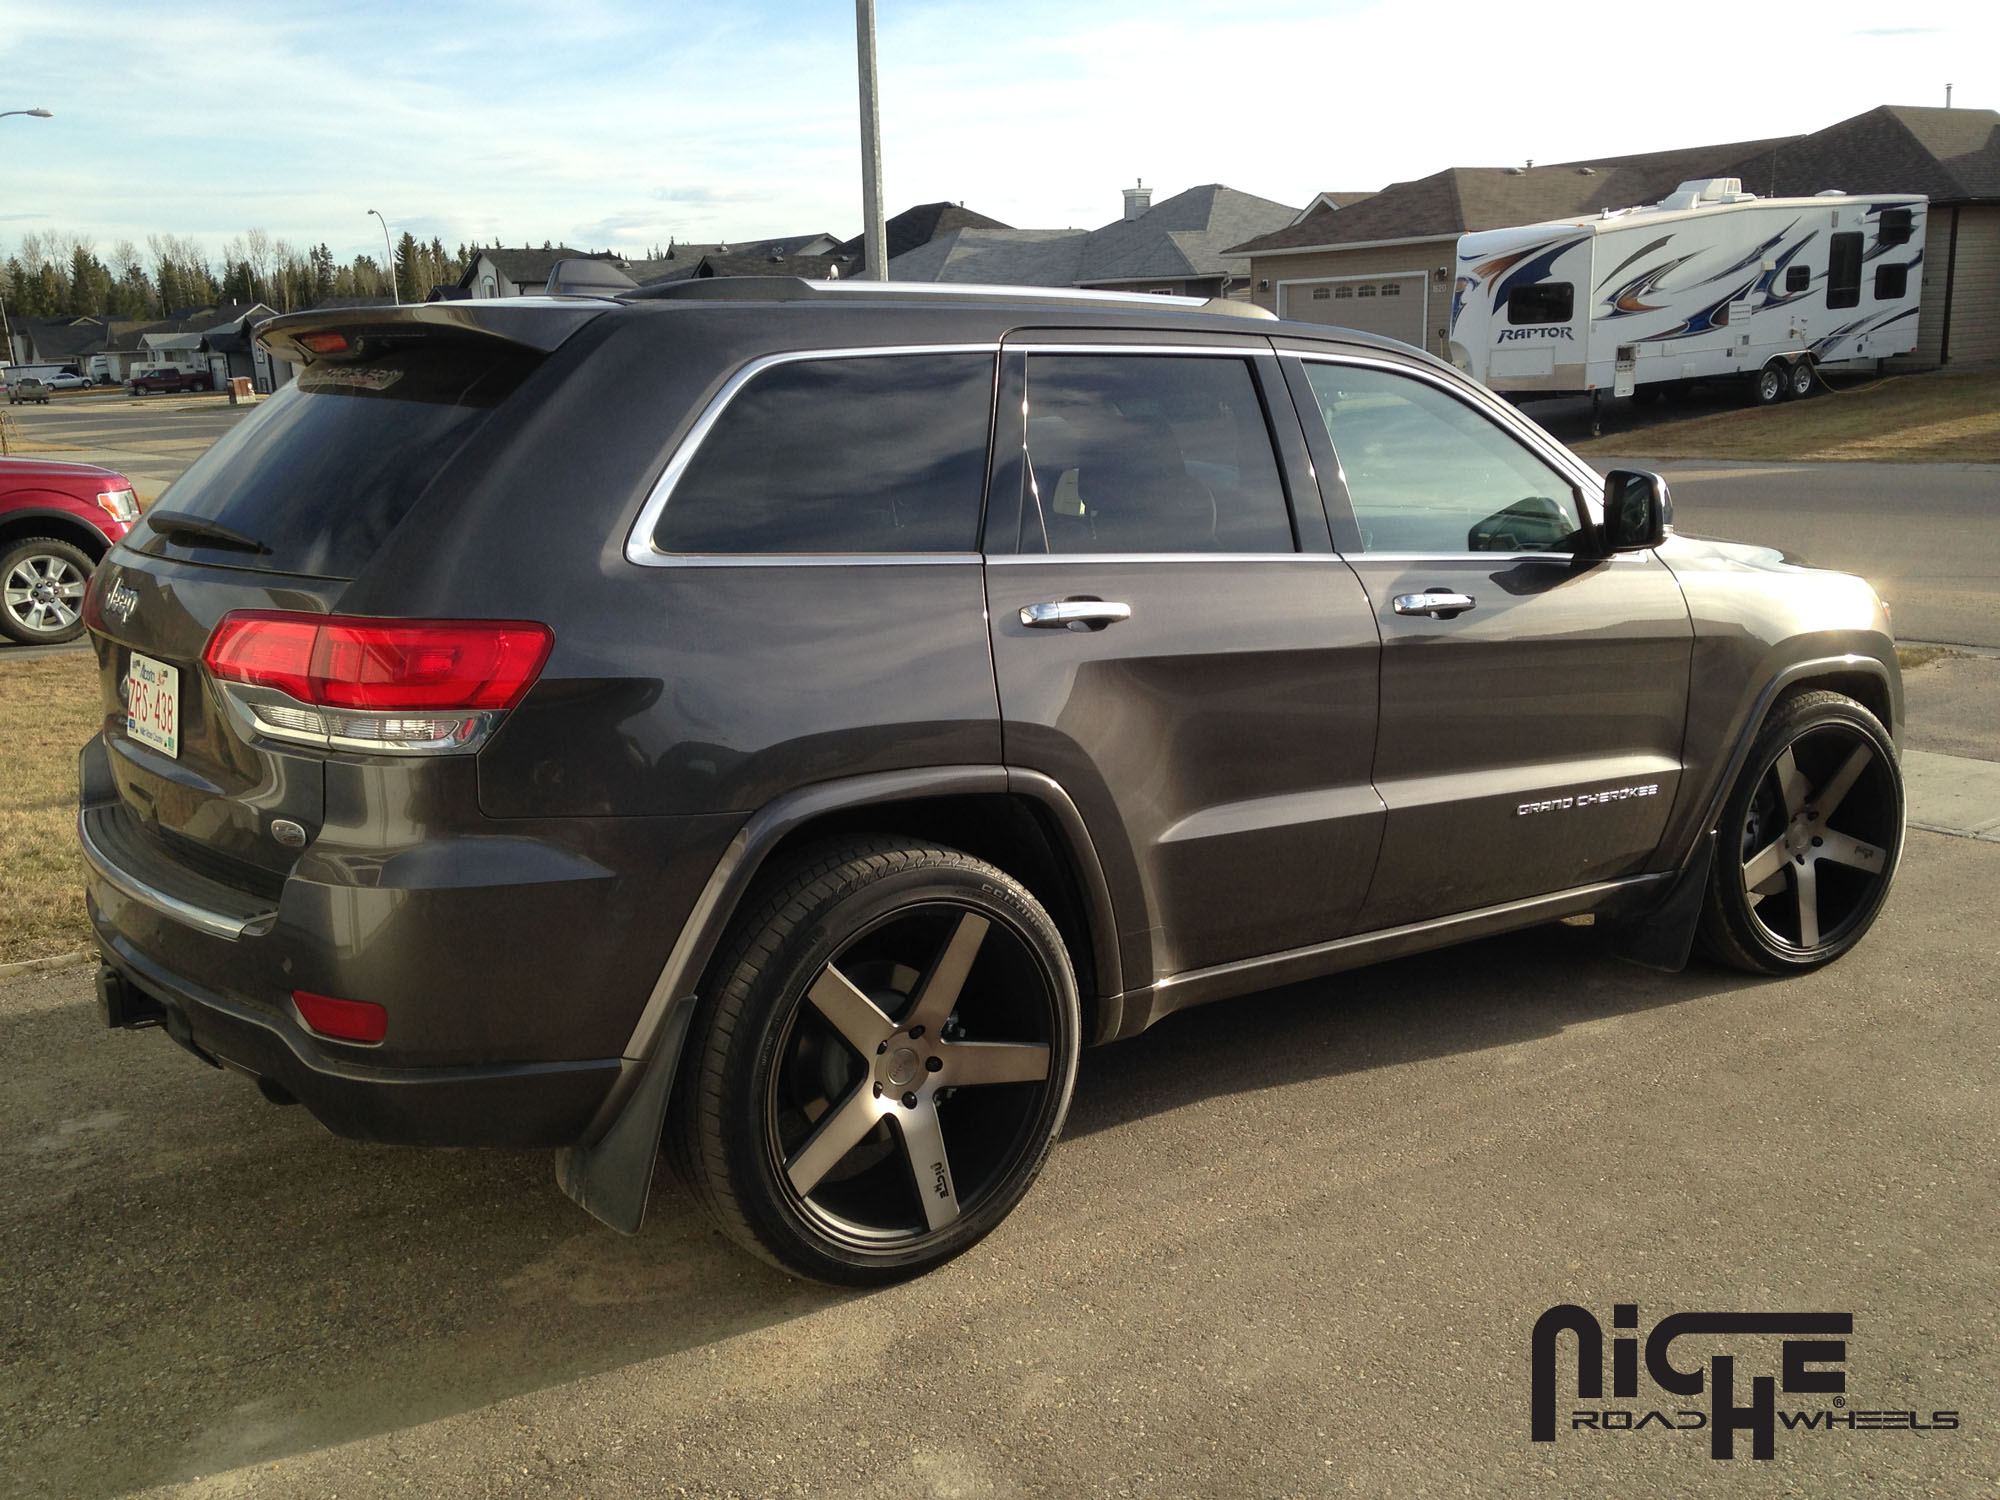 jeep grand cherokee milan - m134 suv gallery - mht wheels inc.